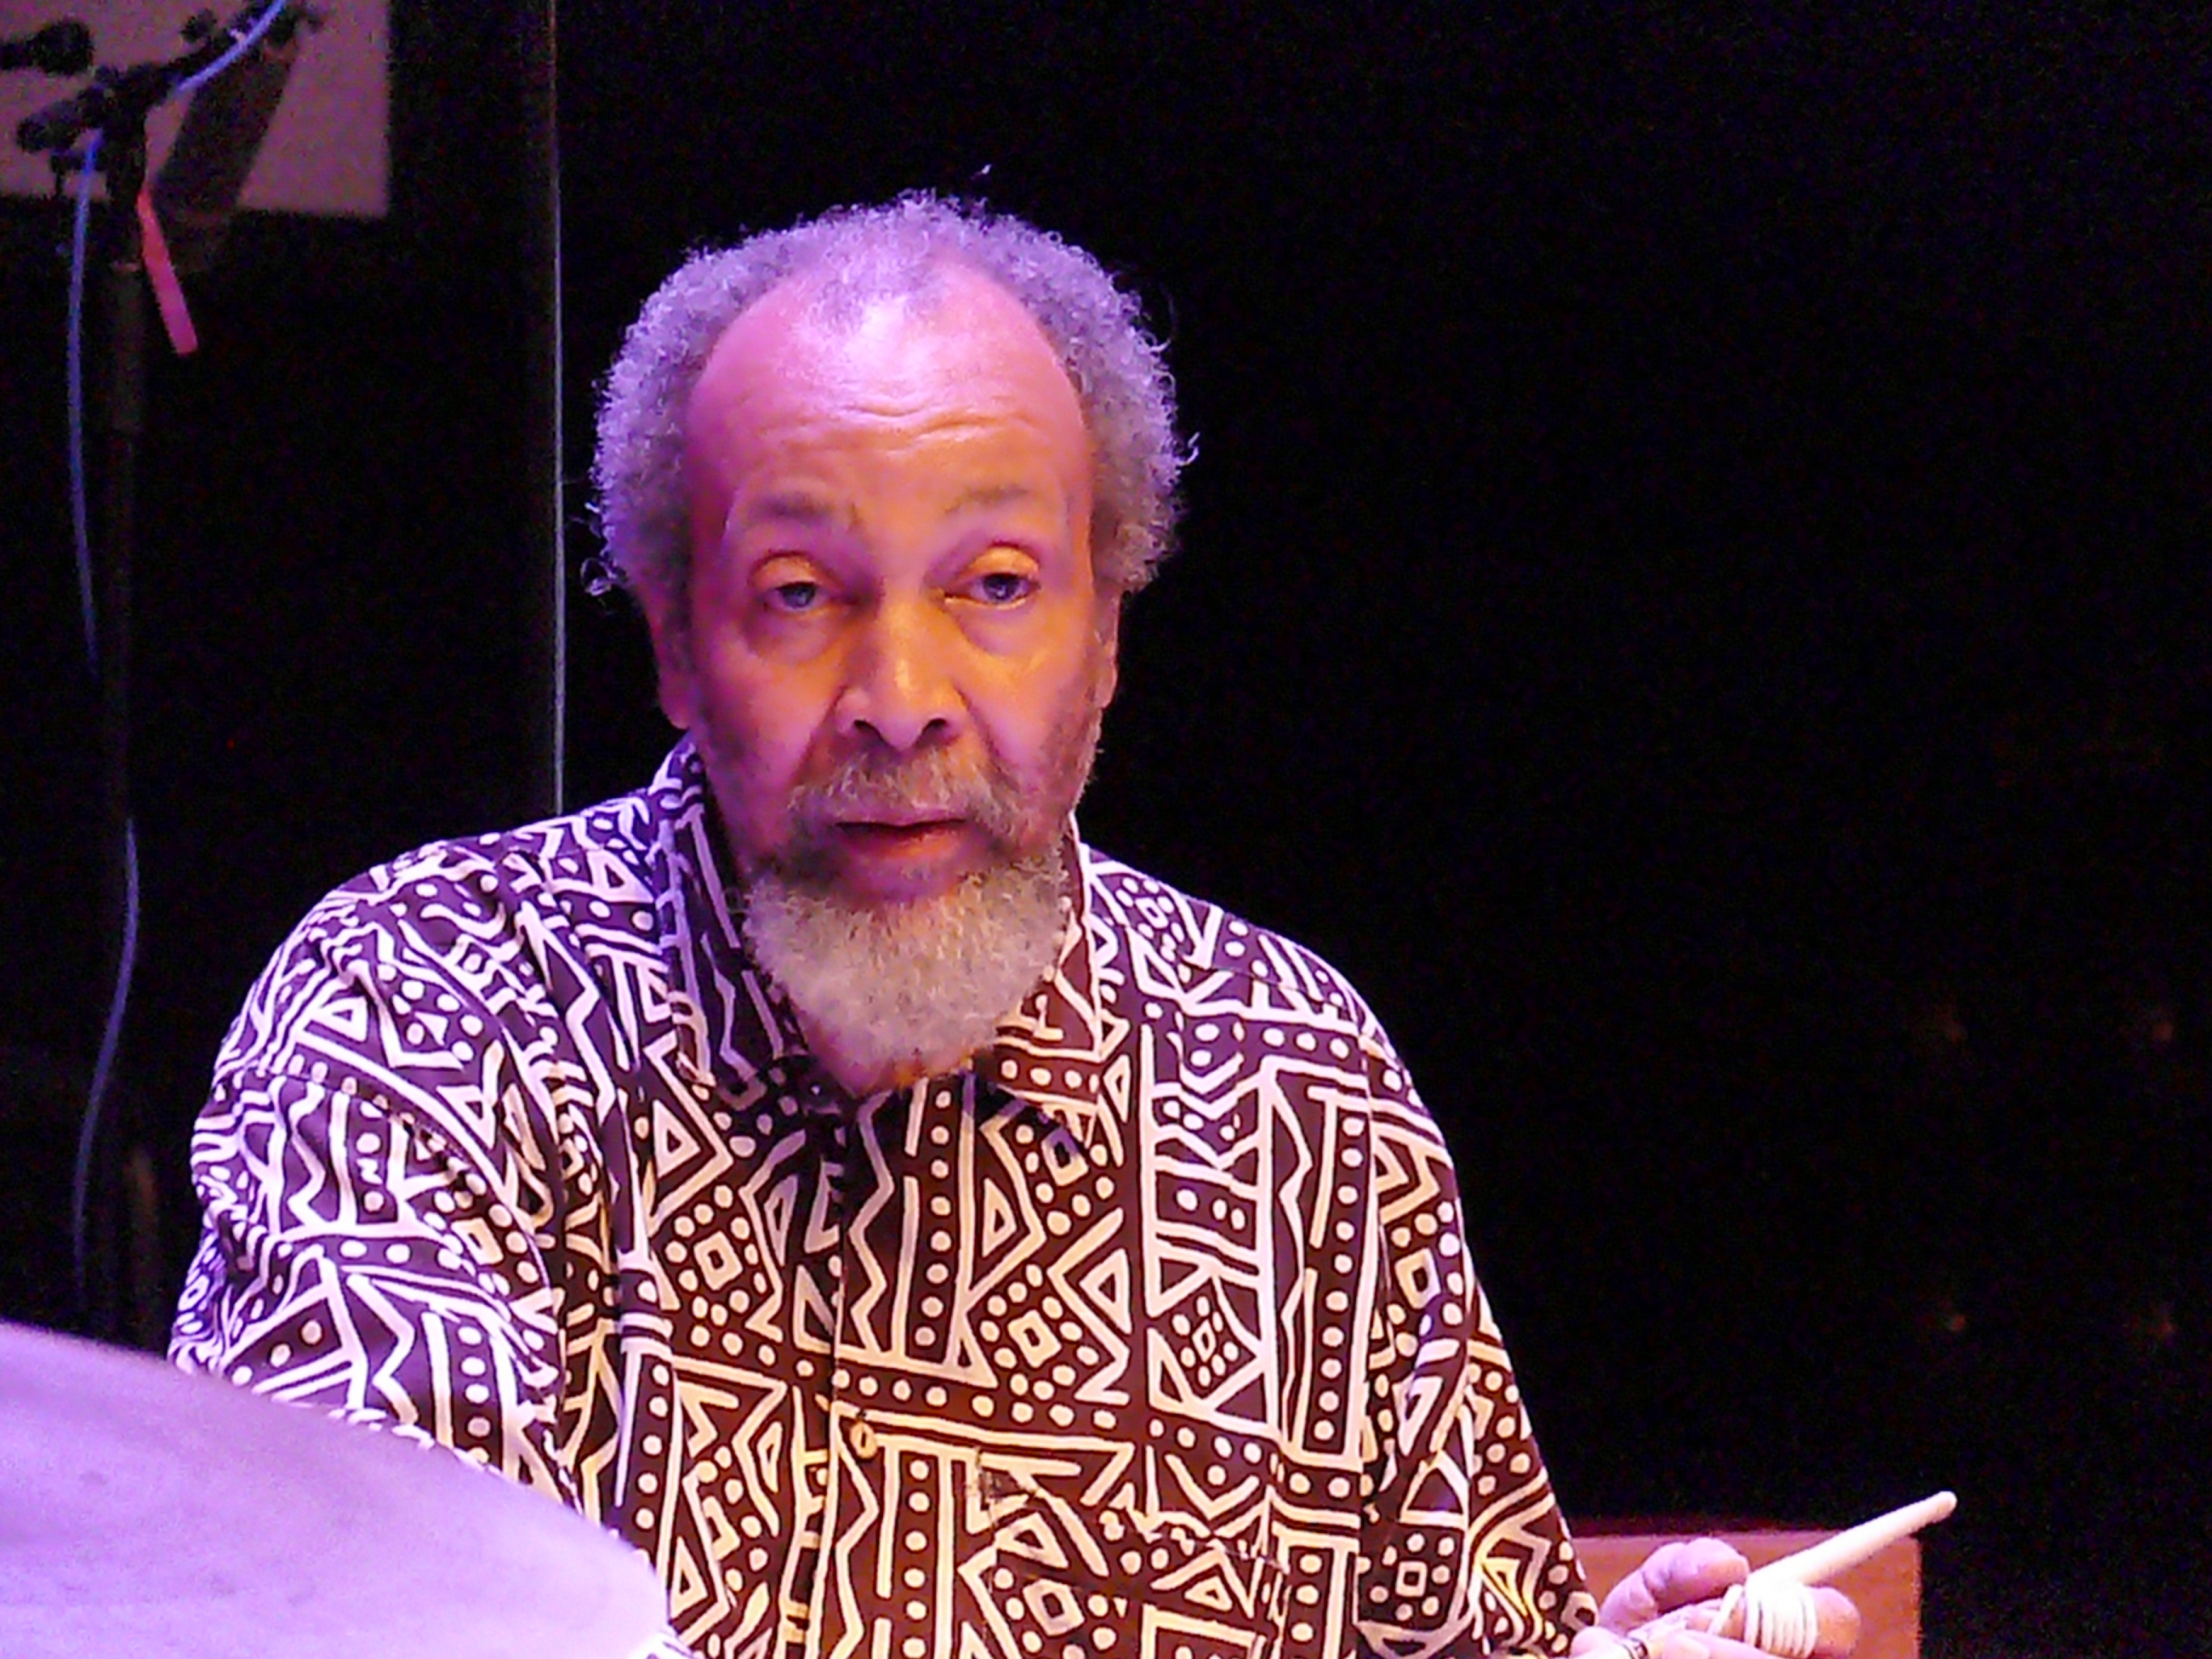 Milford graves at the vision festival in new york in june 2013